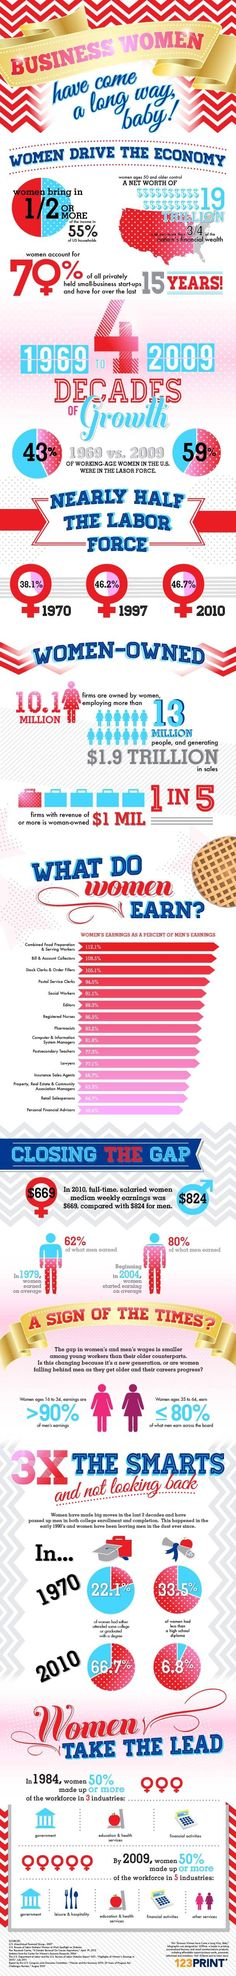 Business infographic : Business Women Have Come A Long Way Baby! #INFOGRAPHIC